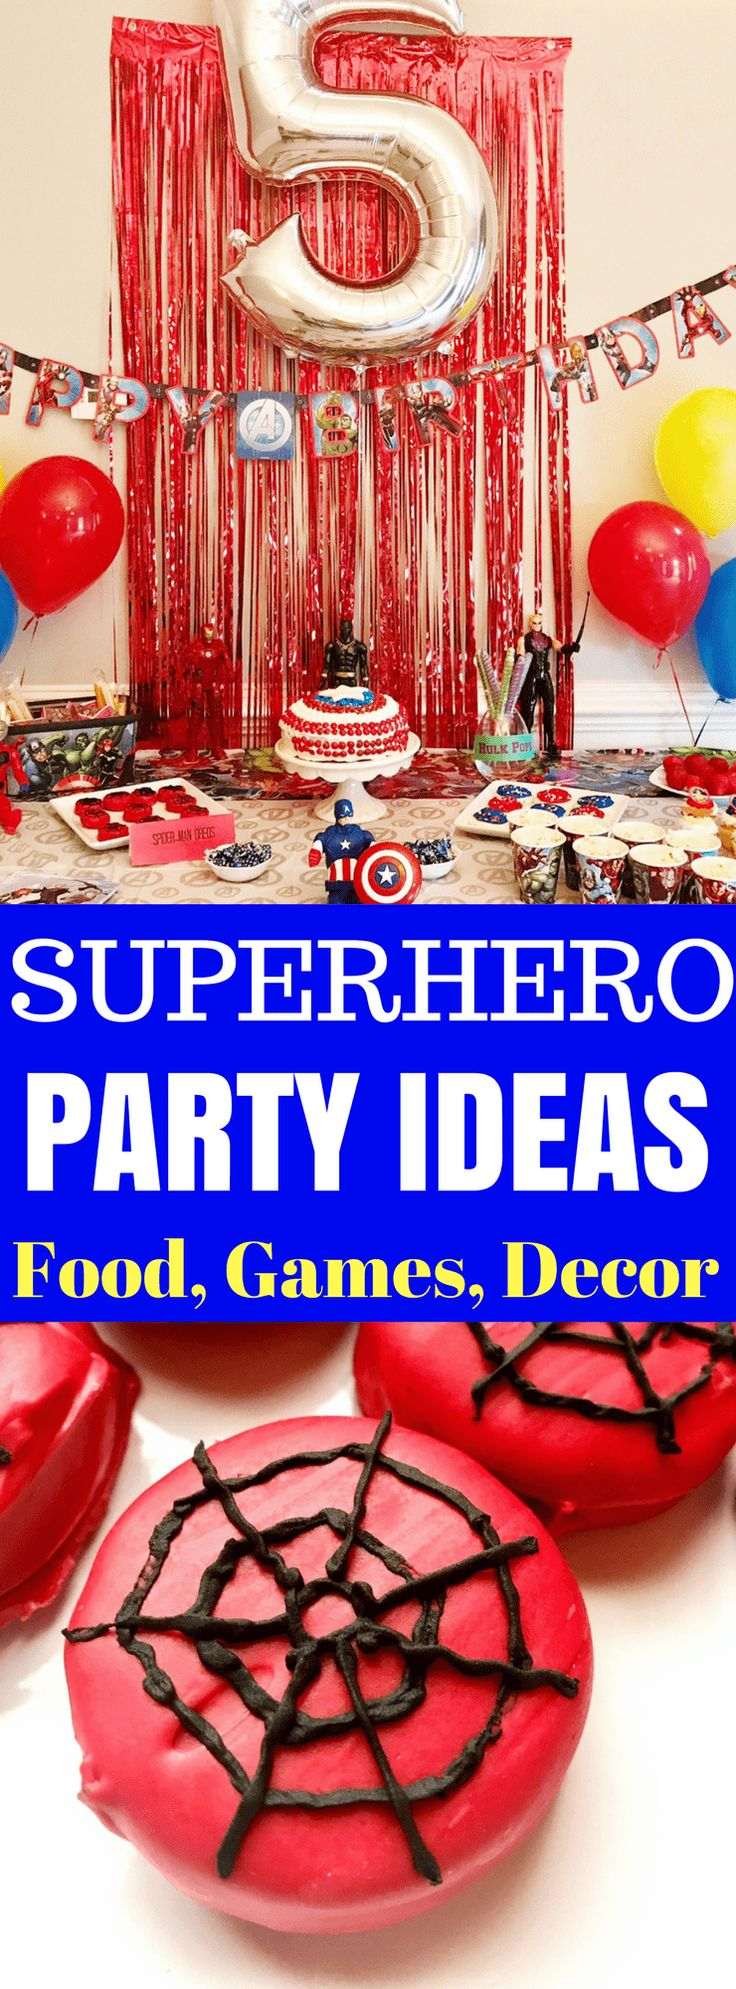 Kids party favors fun factory childrens parties entertainment rentals - Check Out These Superhero Party Ideas Perfect For Birthday Parties Kids Parties Halloween